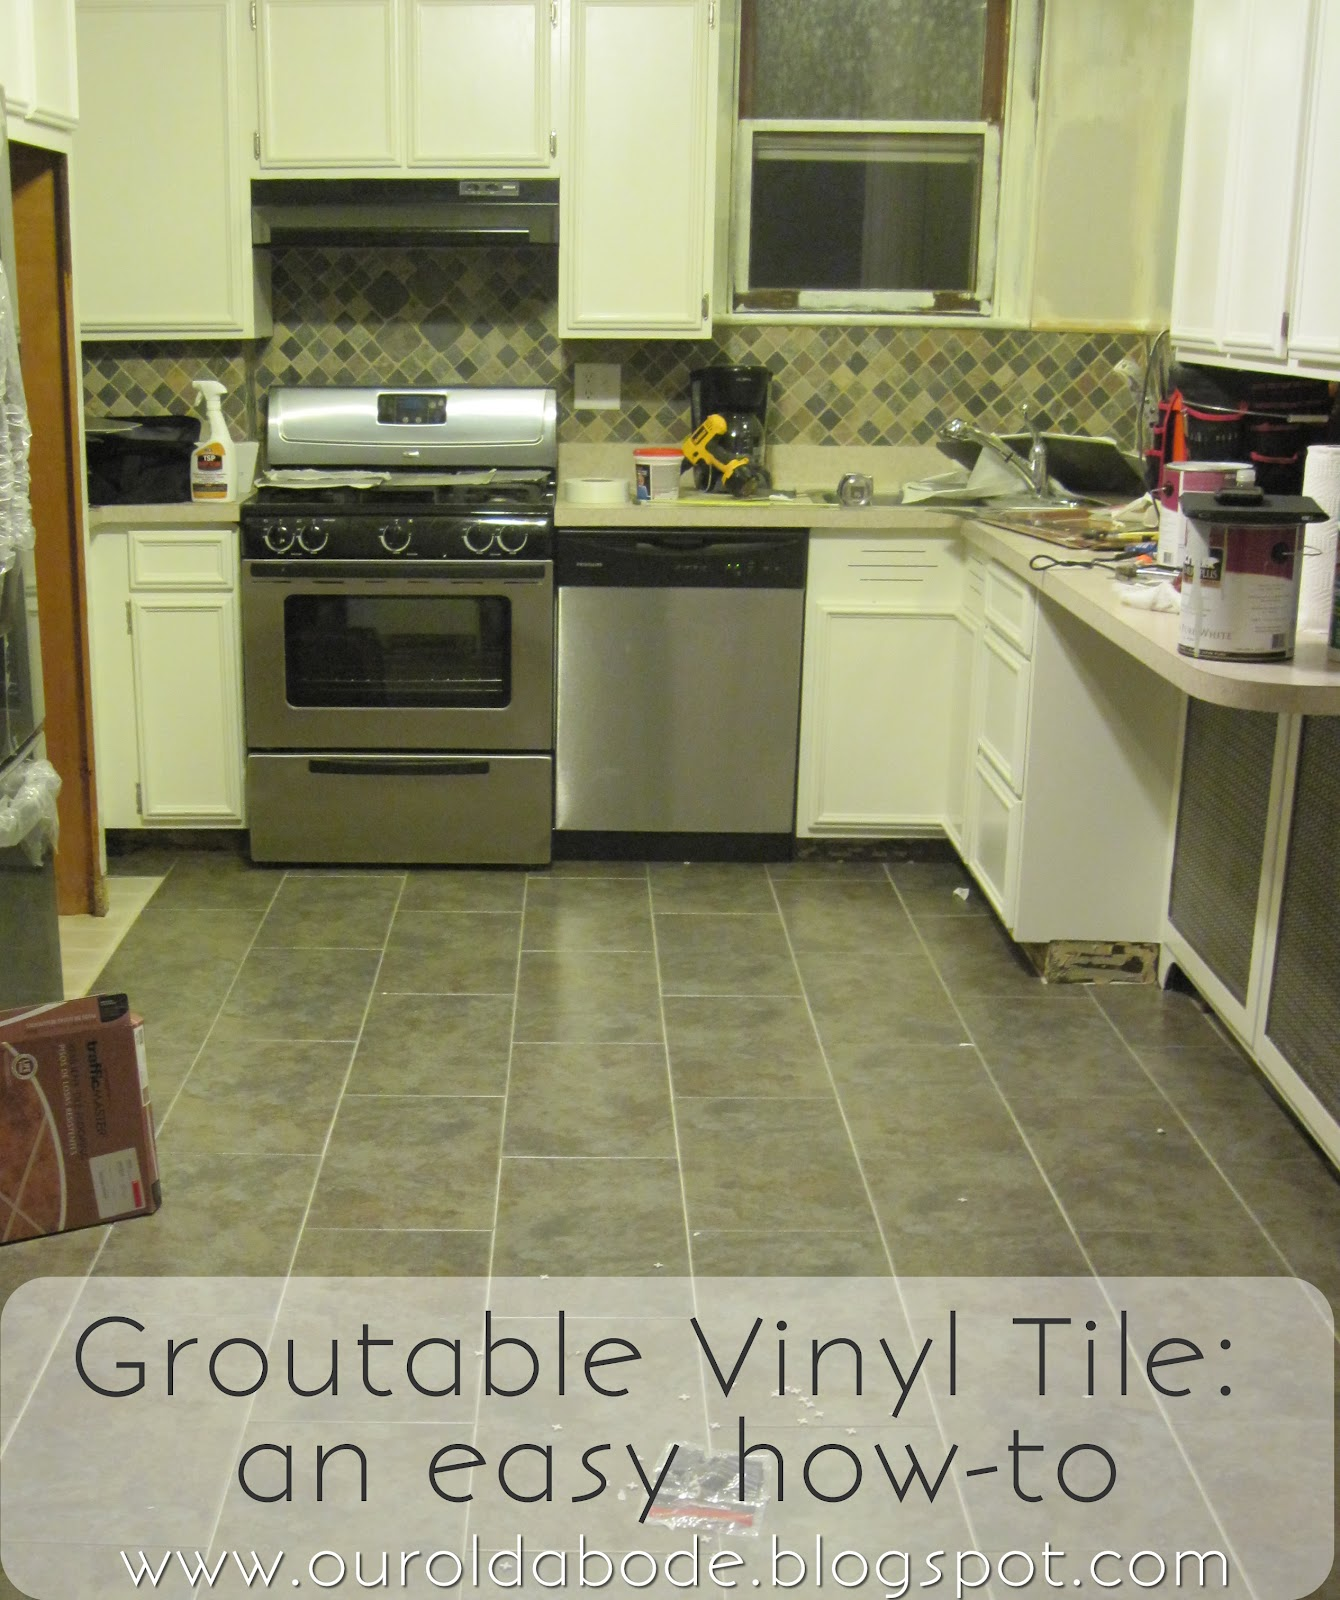 Kitchen Tile Floors: Our Old Abode: Kitchen Floor : Groutable Vinyl Tile